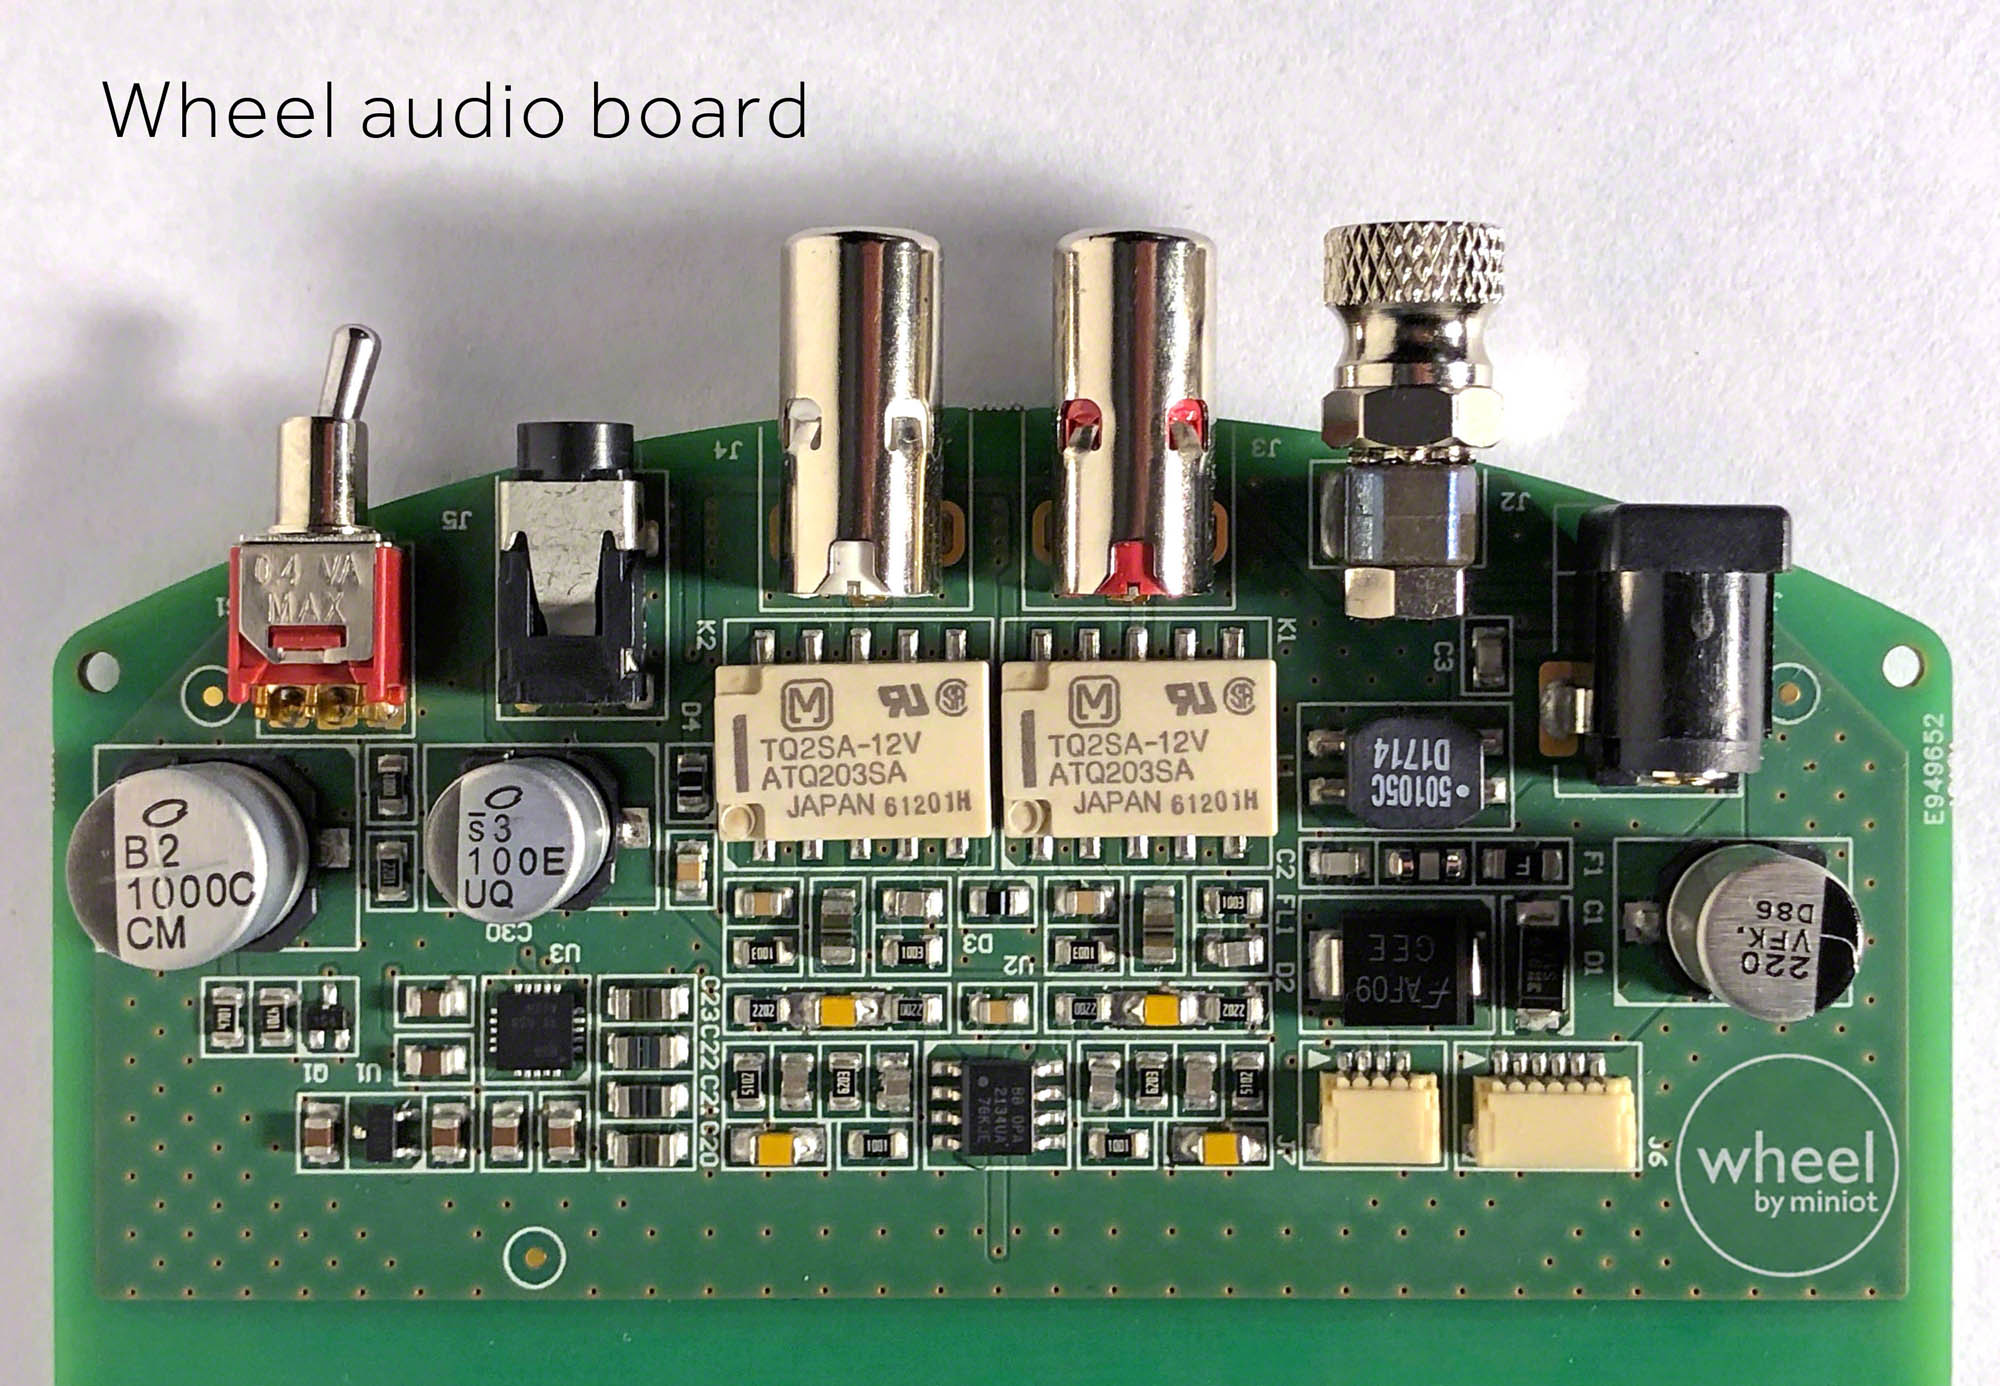 Wheel audio board